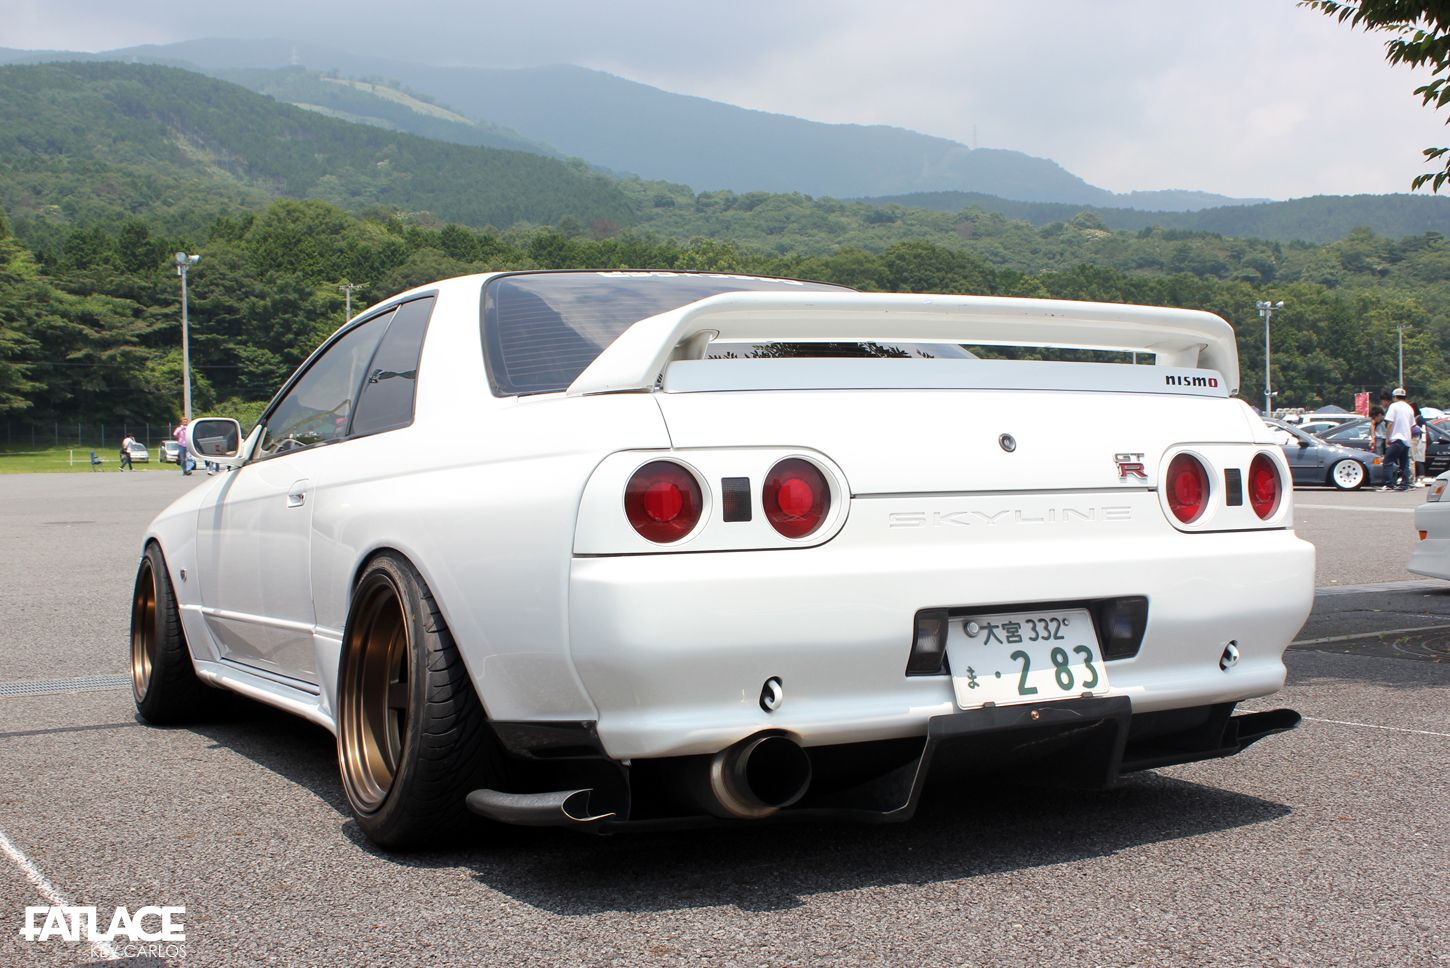 If I could choose one Japanese car brand to drive forever, it would ...